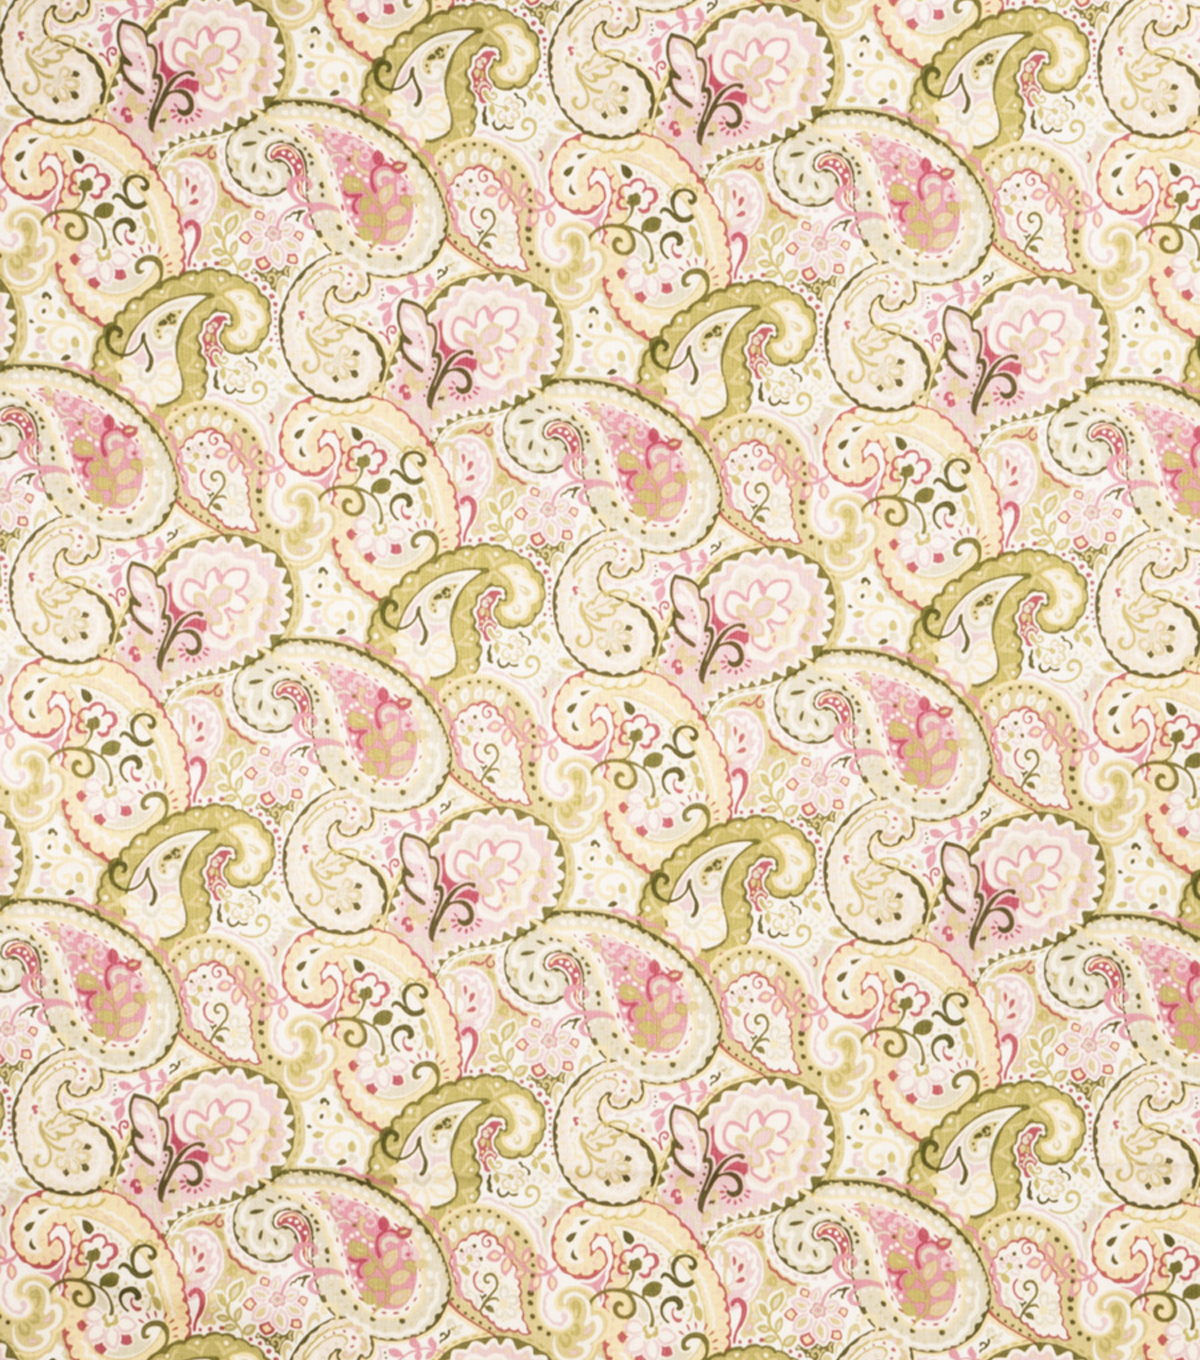 Home Decor 8\u0022x8\u0022 Fabric Swatch-SMC Designs Loan / Strawberry